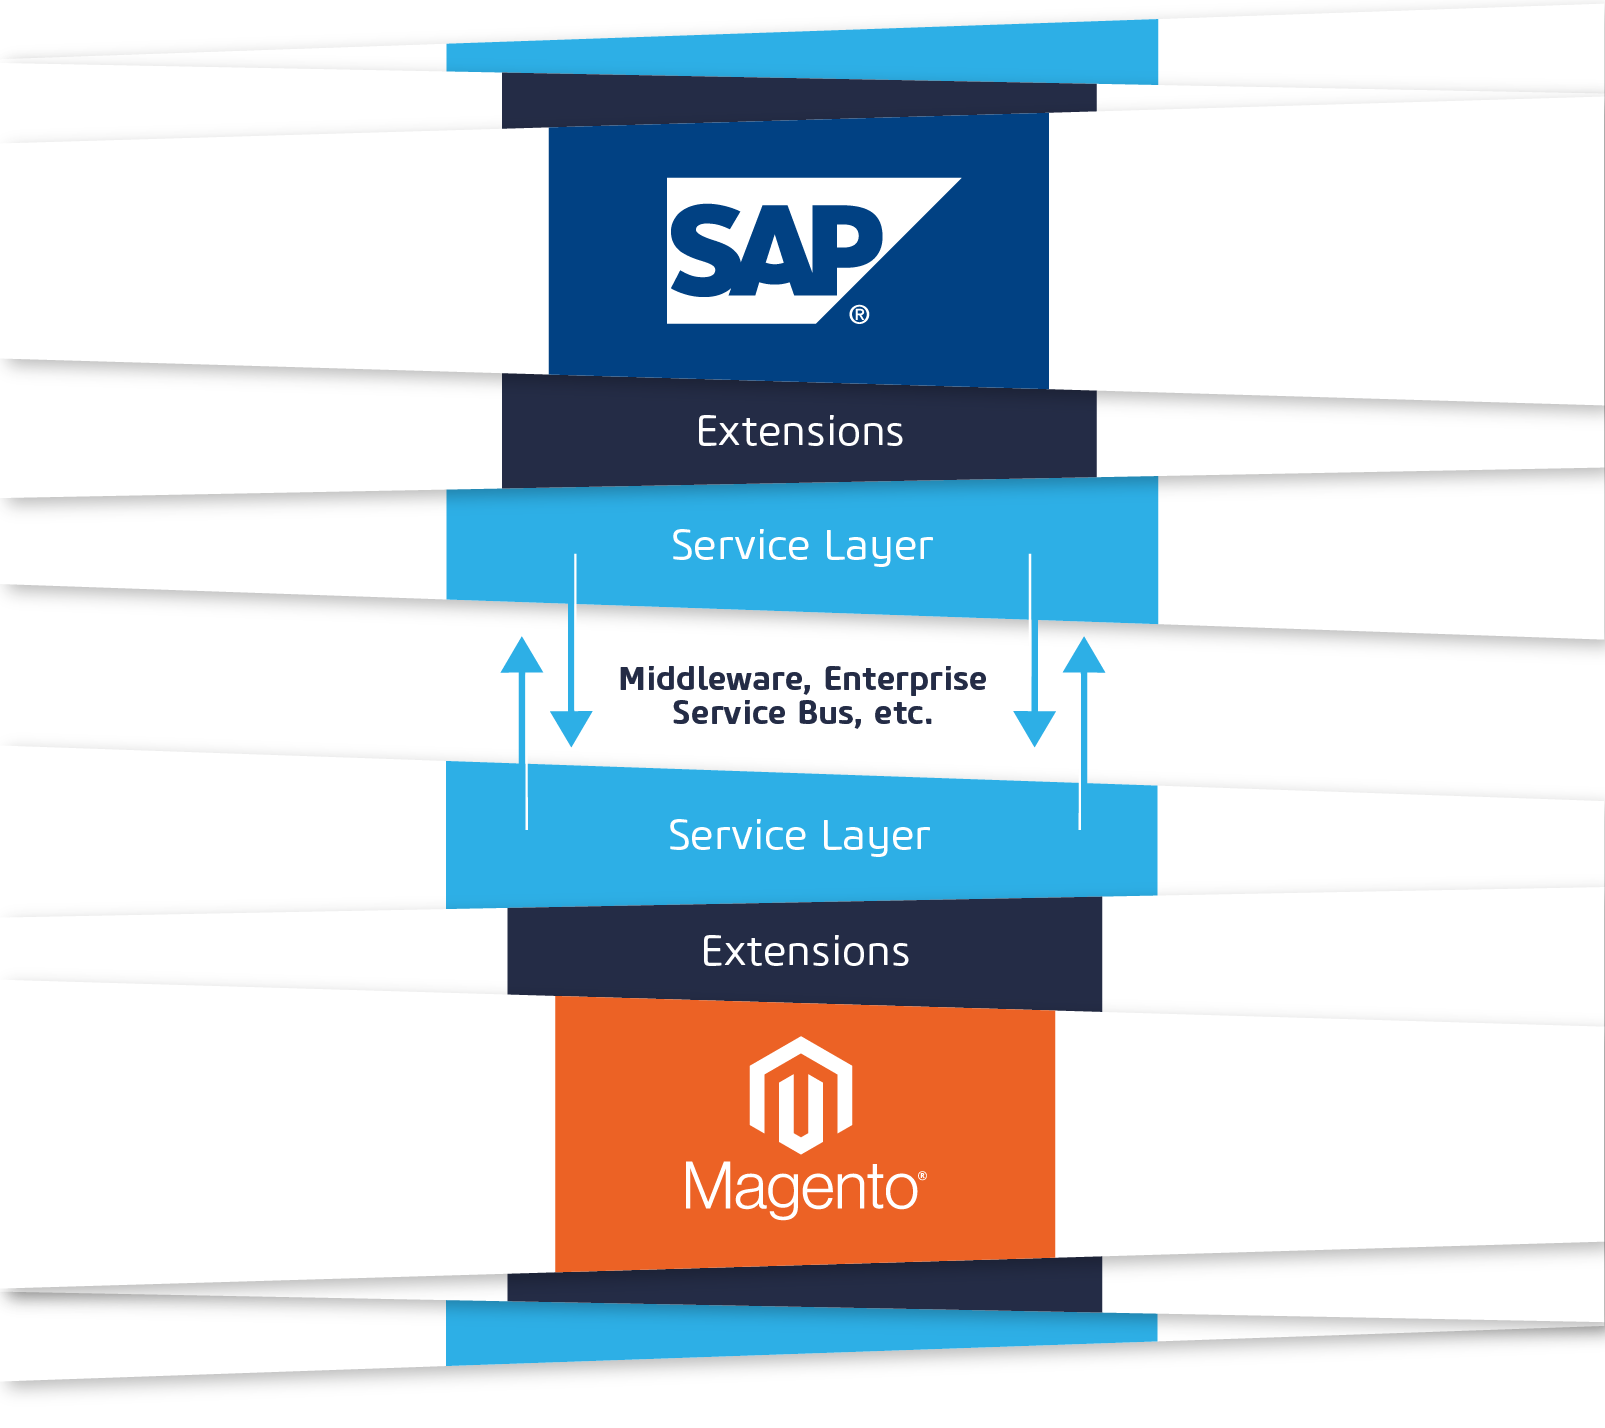 Magento-SAP-Integration über Service Layer, Middleware, Enterprise Service Bus